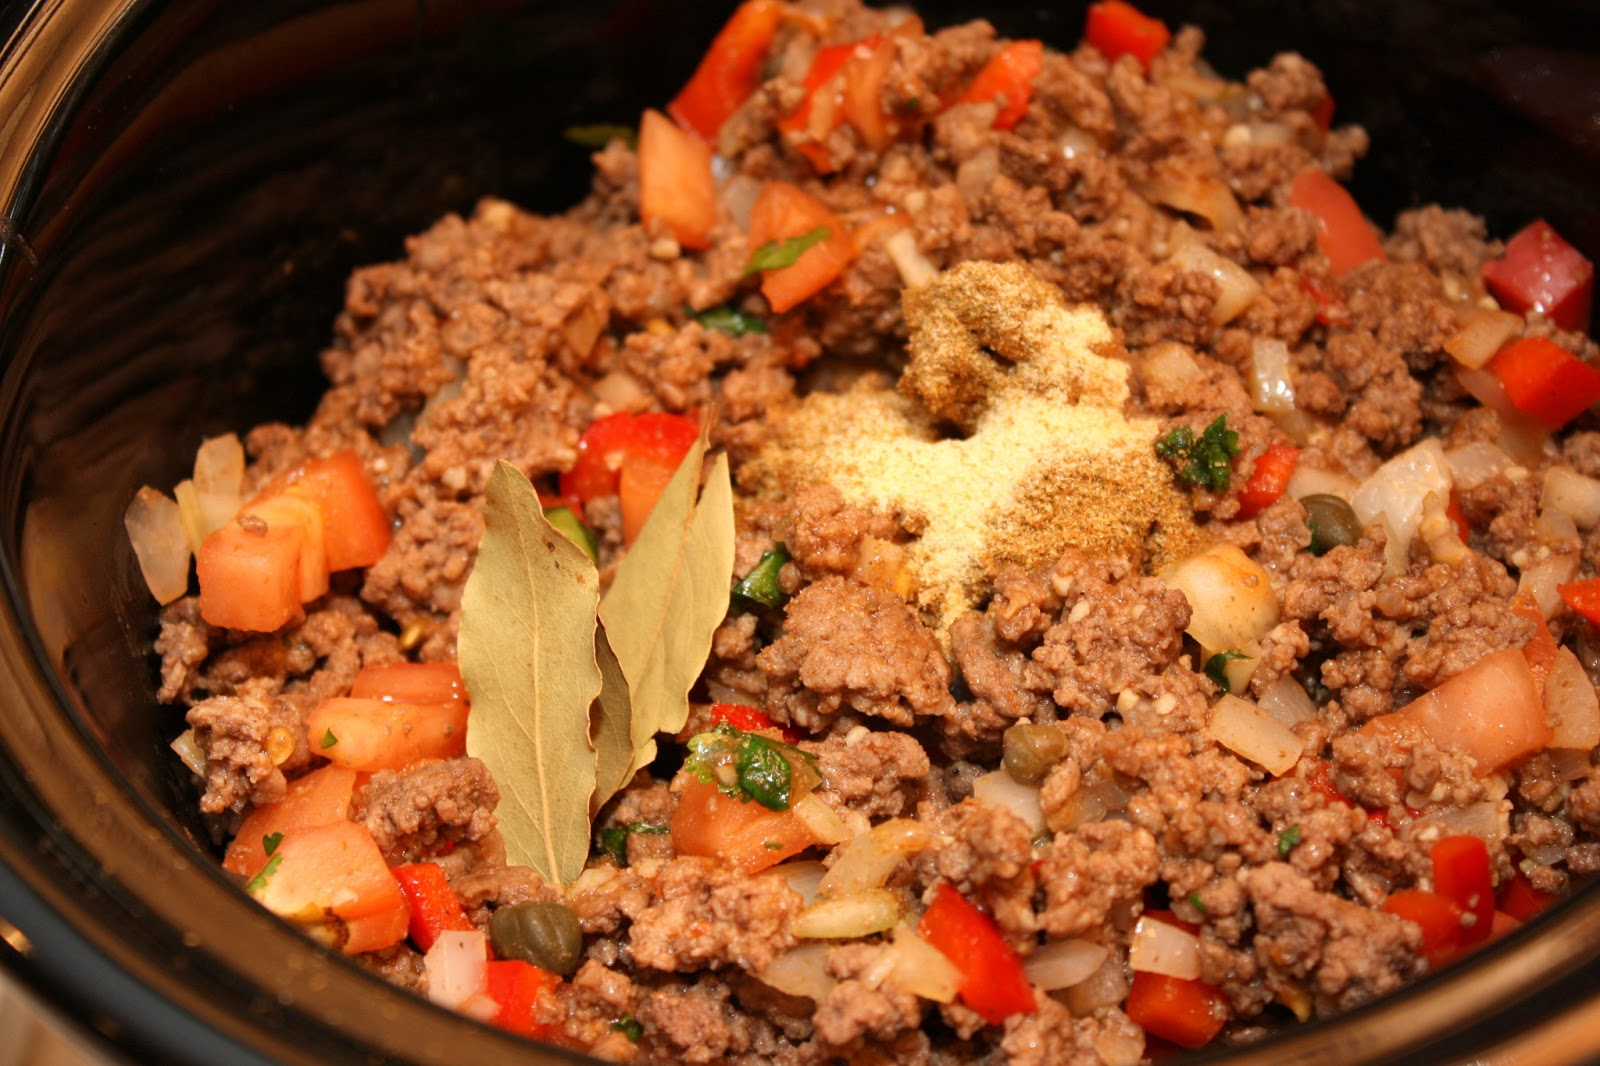 The Bitchin' Kitchin': Crock Pot Picadillo